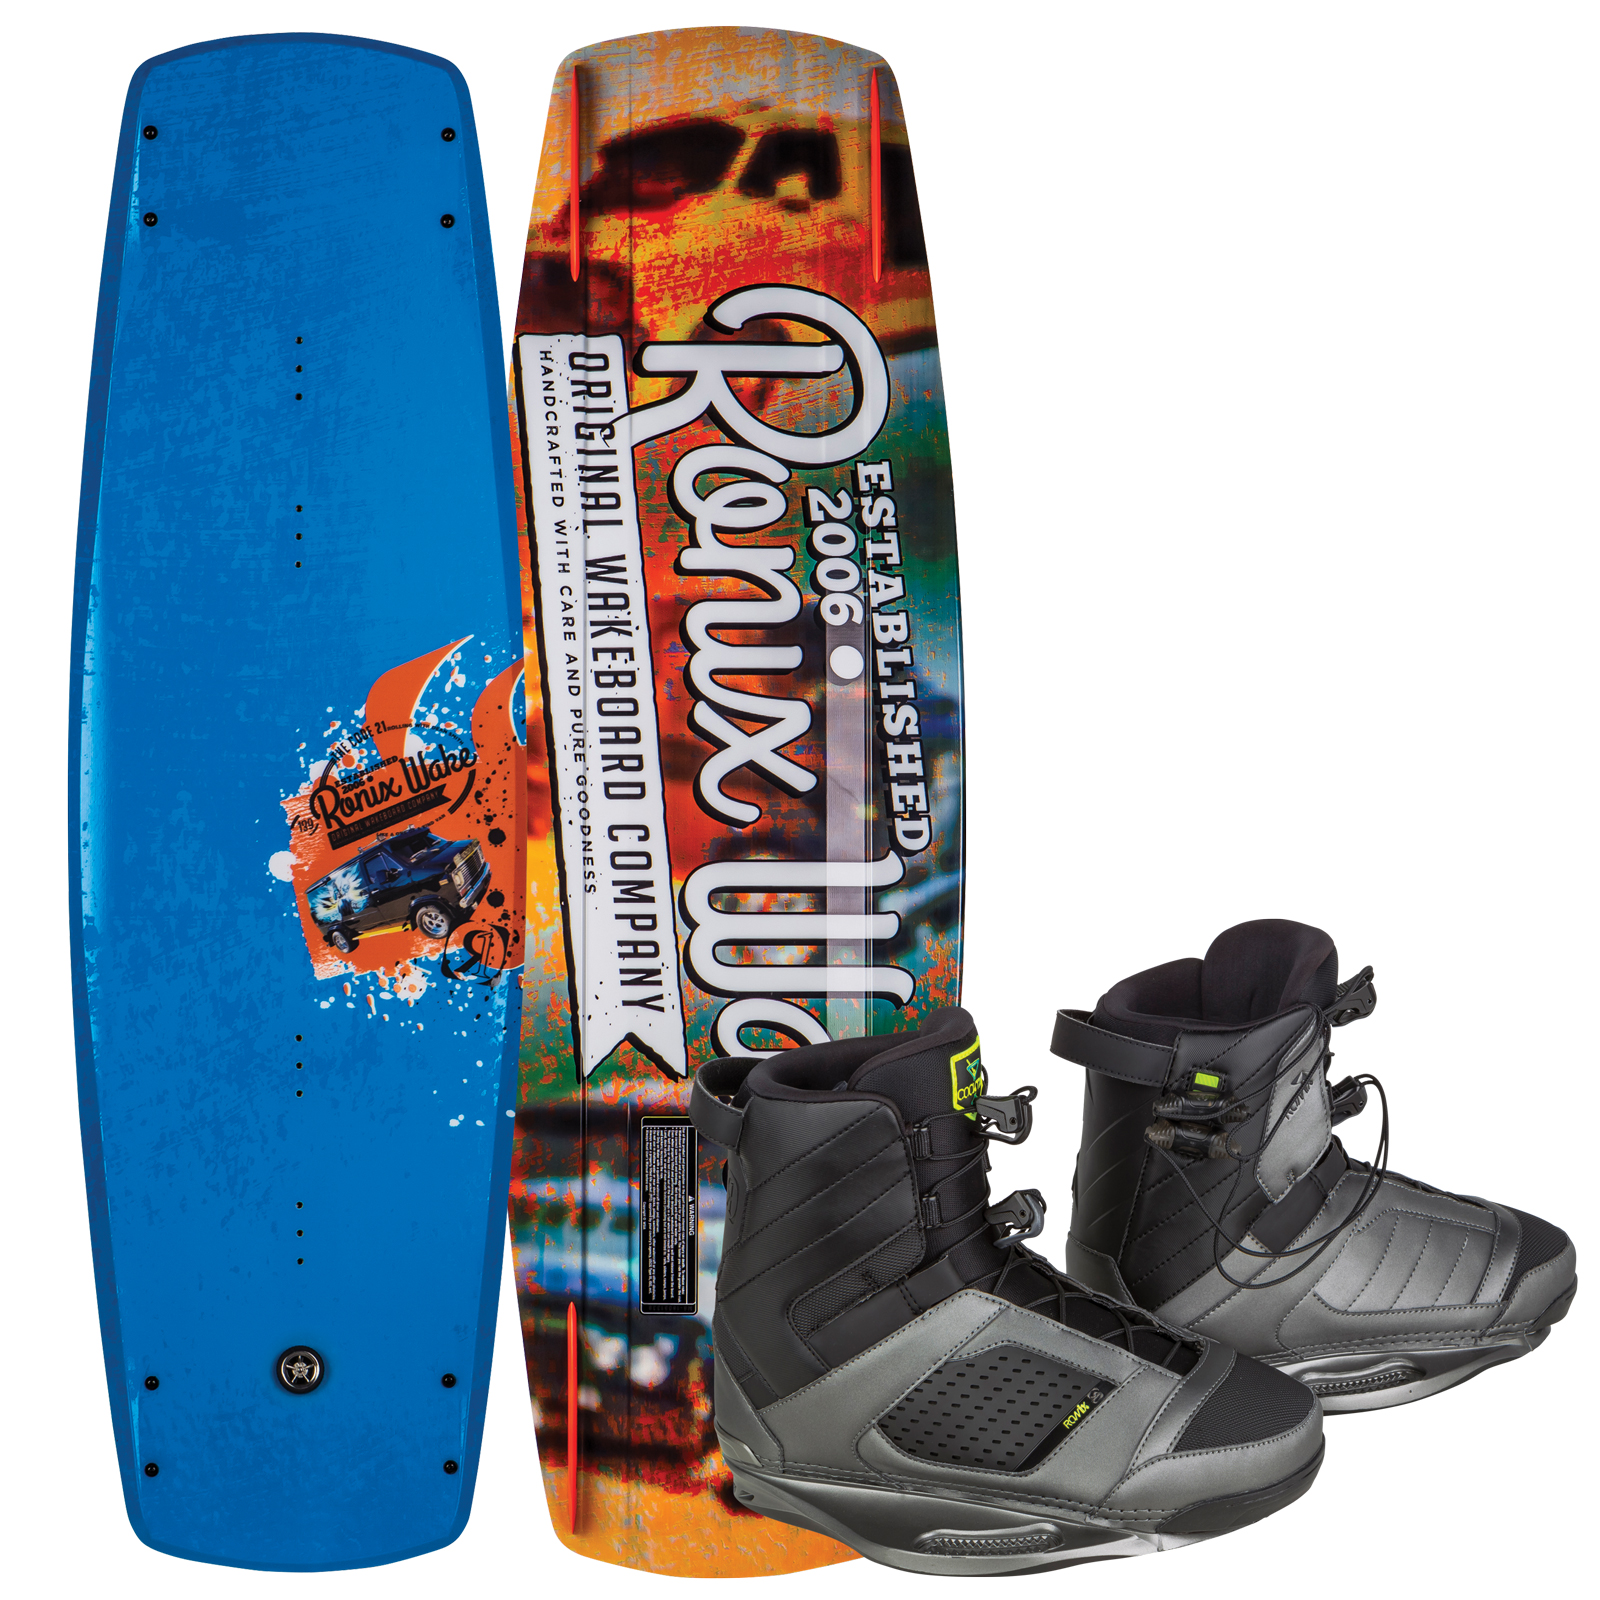 CODE 21 139 W/ COCKTAIL PACKAGE RONIX 2017